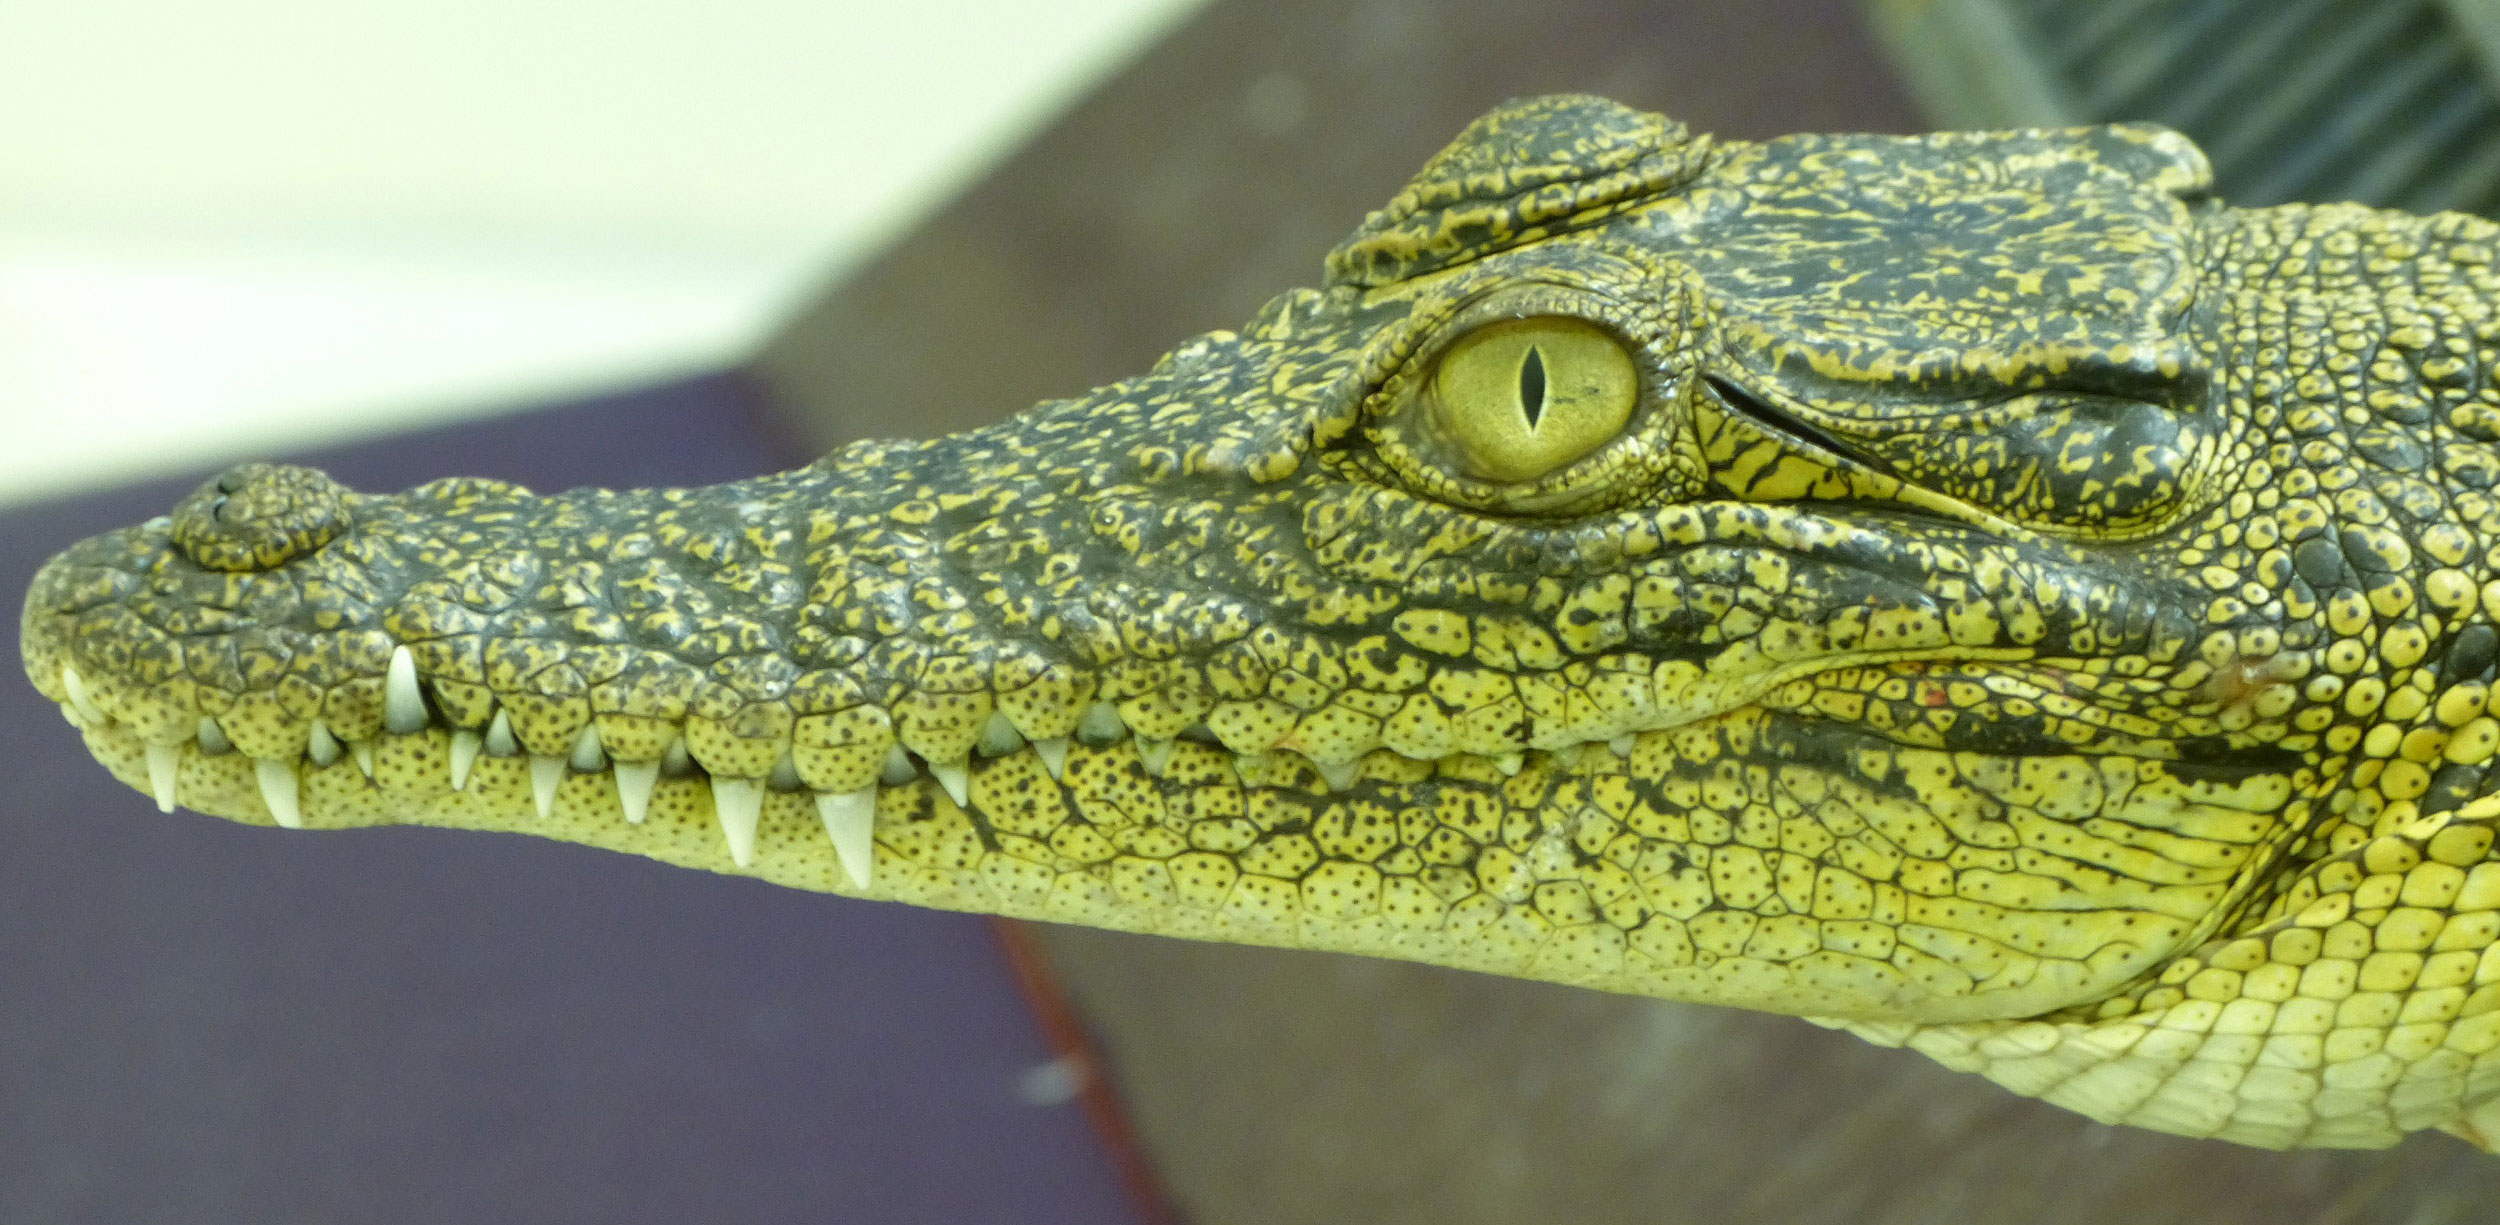 Crocodile eyes more sophisticated than previously thought ...